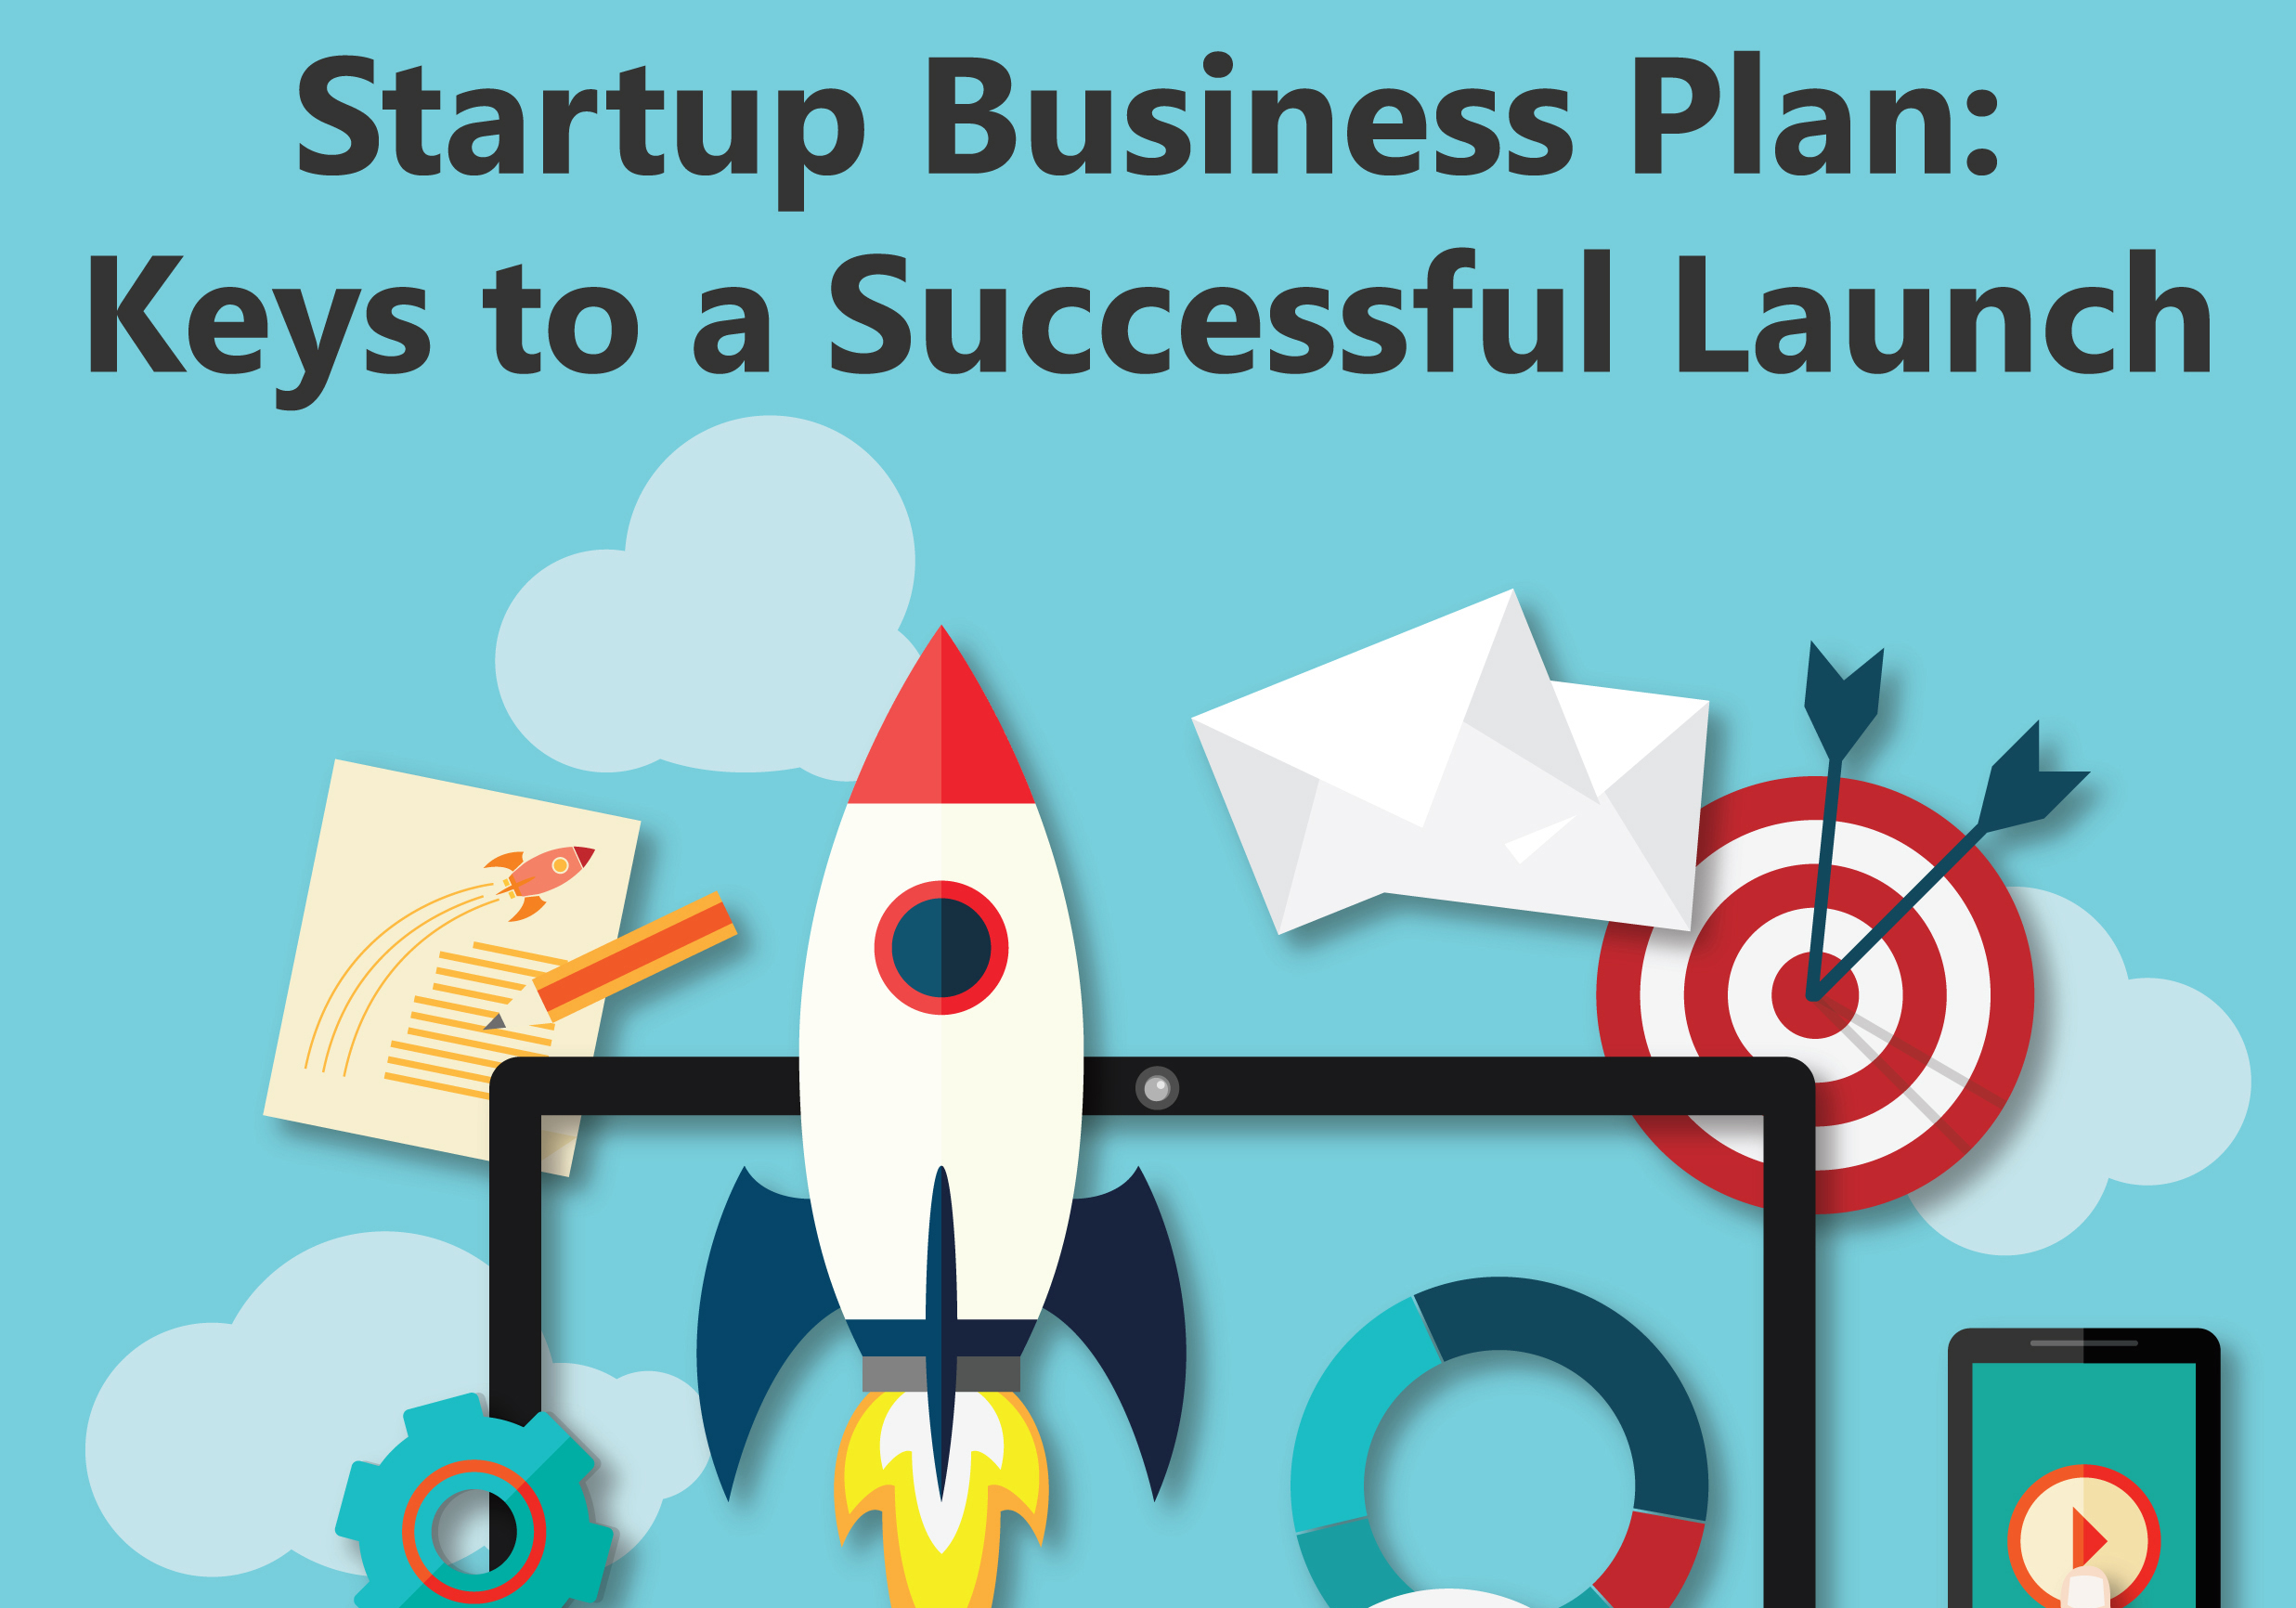 Start A Startup Company Startup Business Plan Keys To A Successful Launch